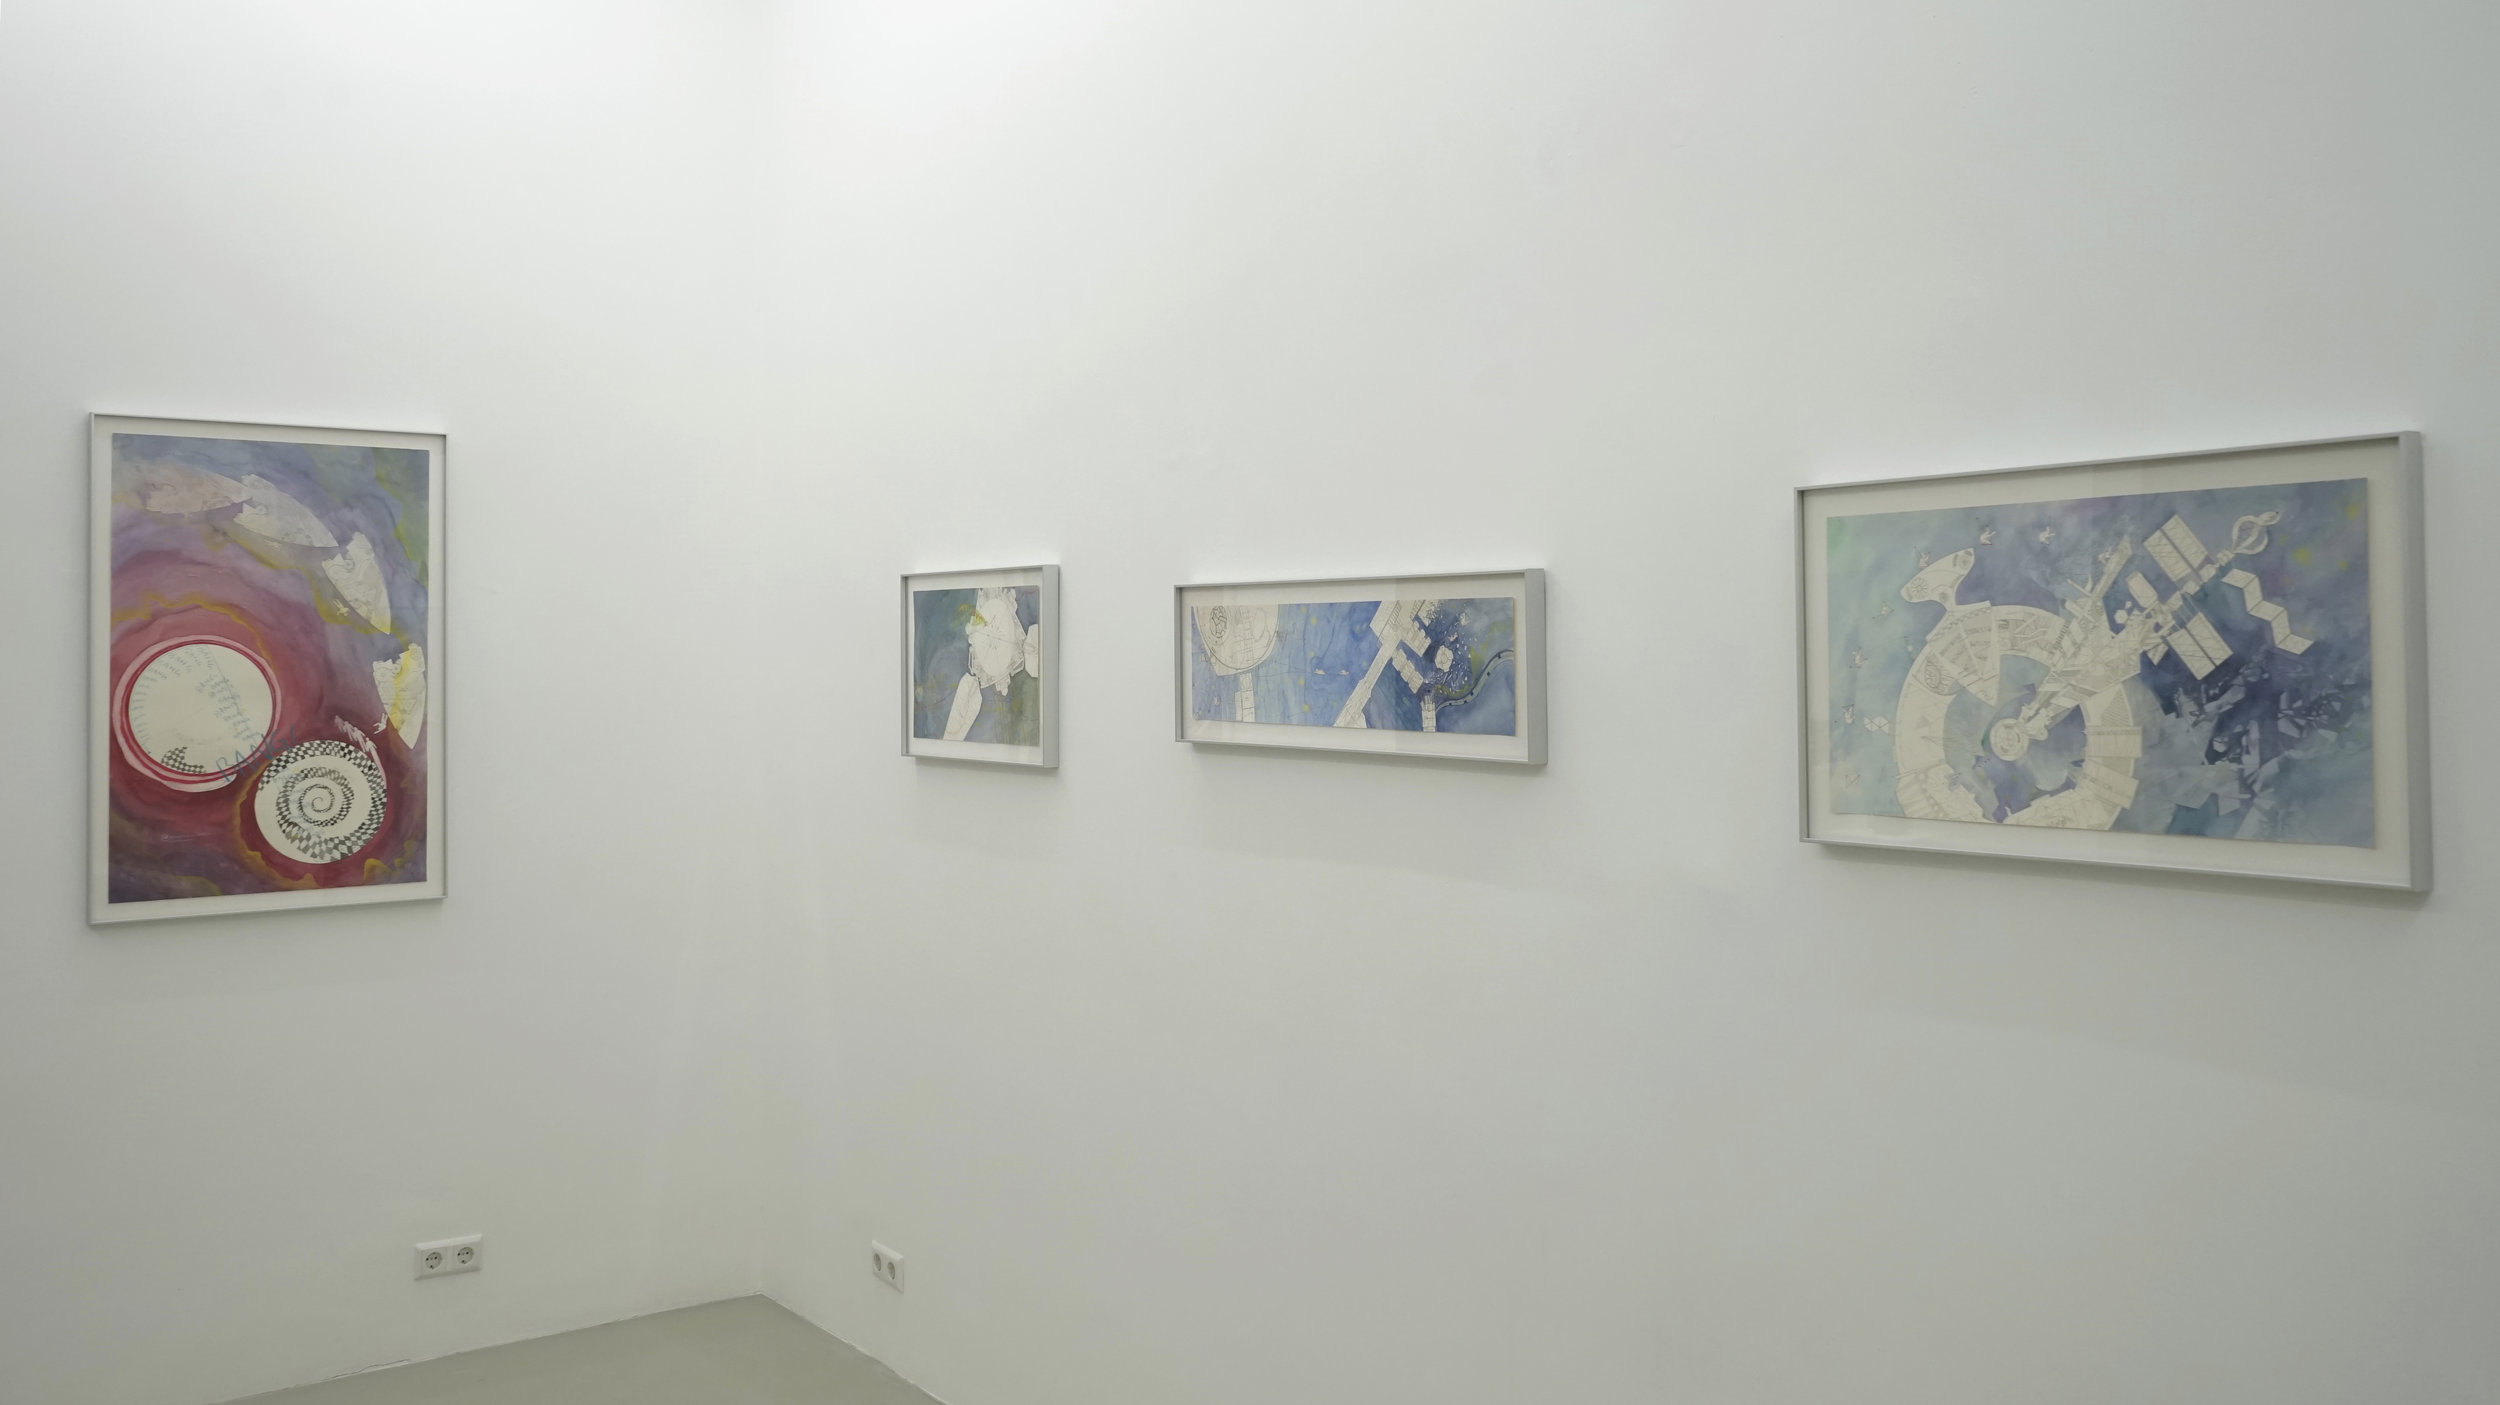 Exhibition view 3